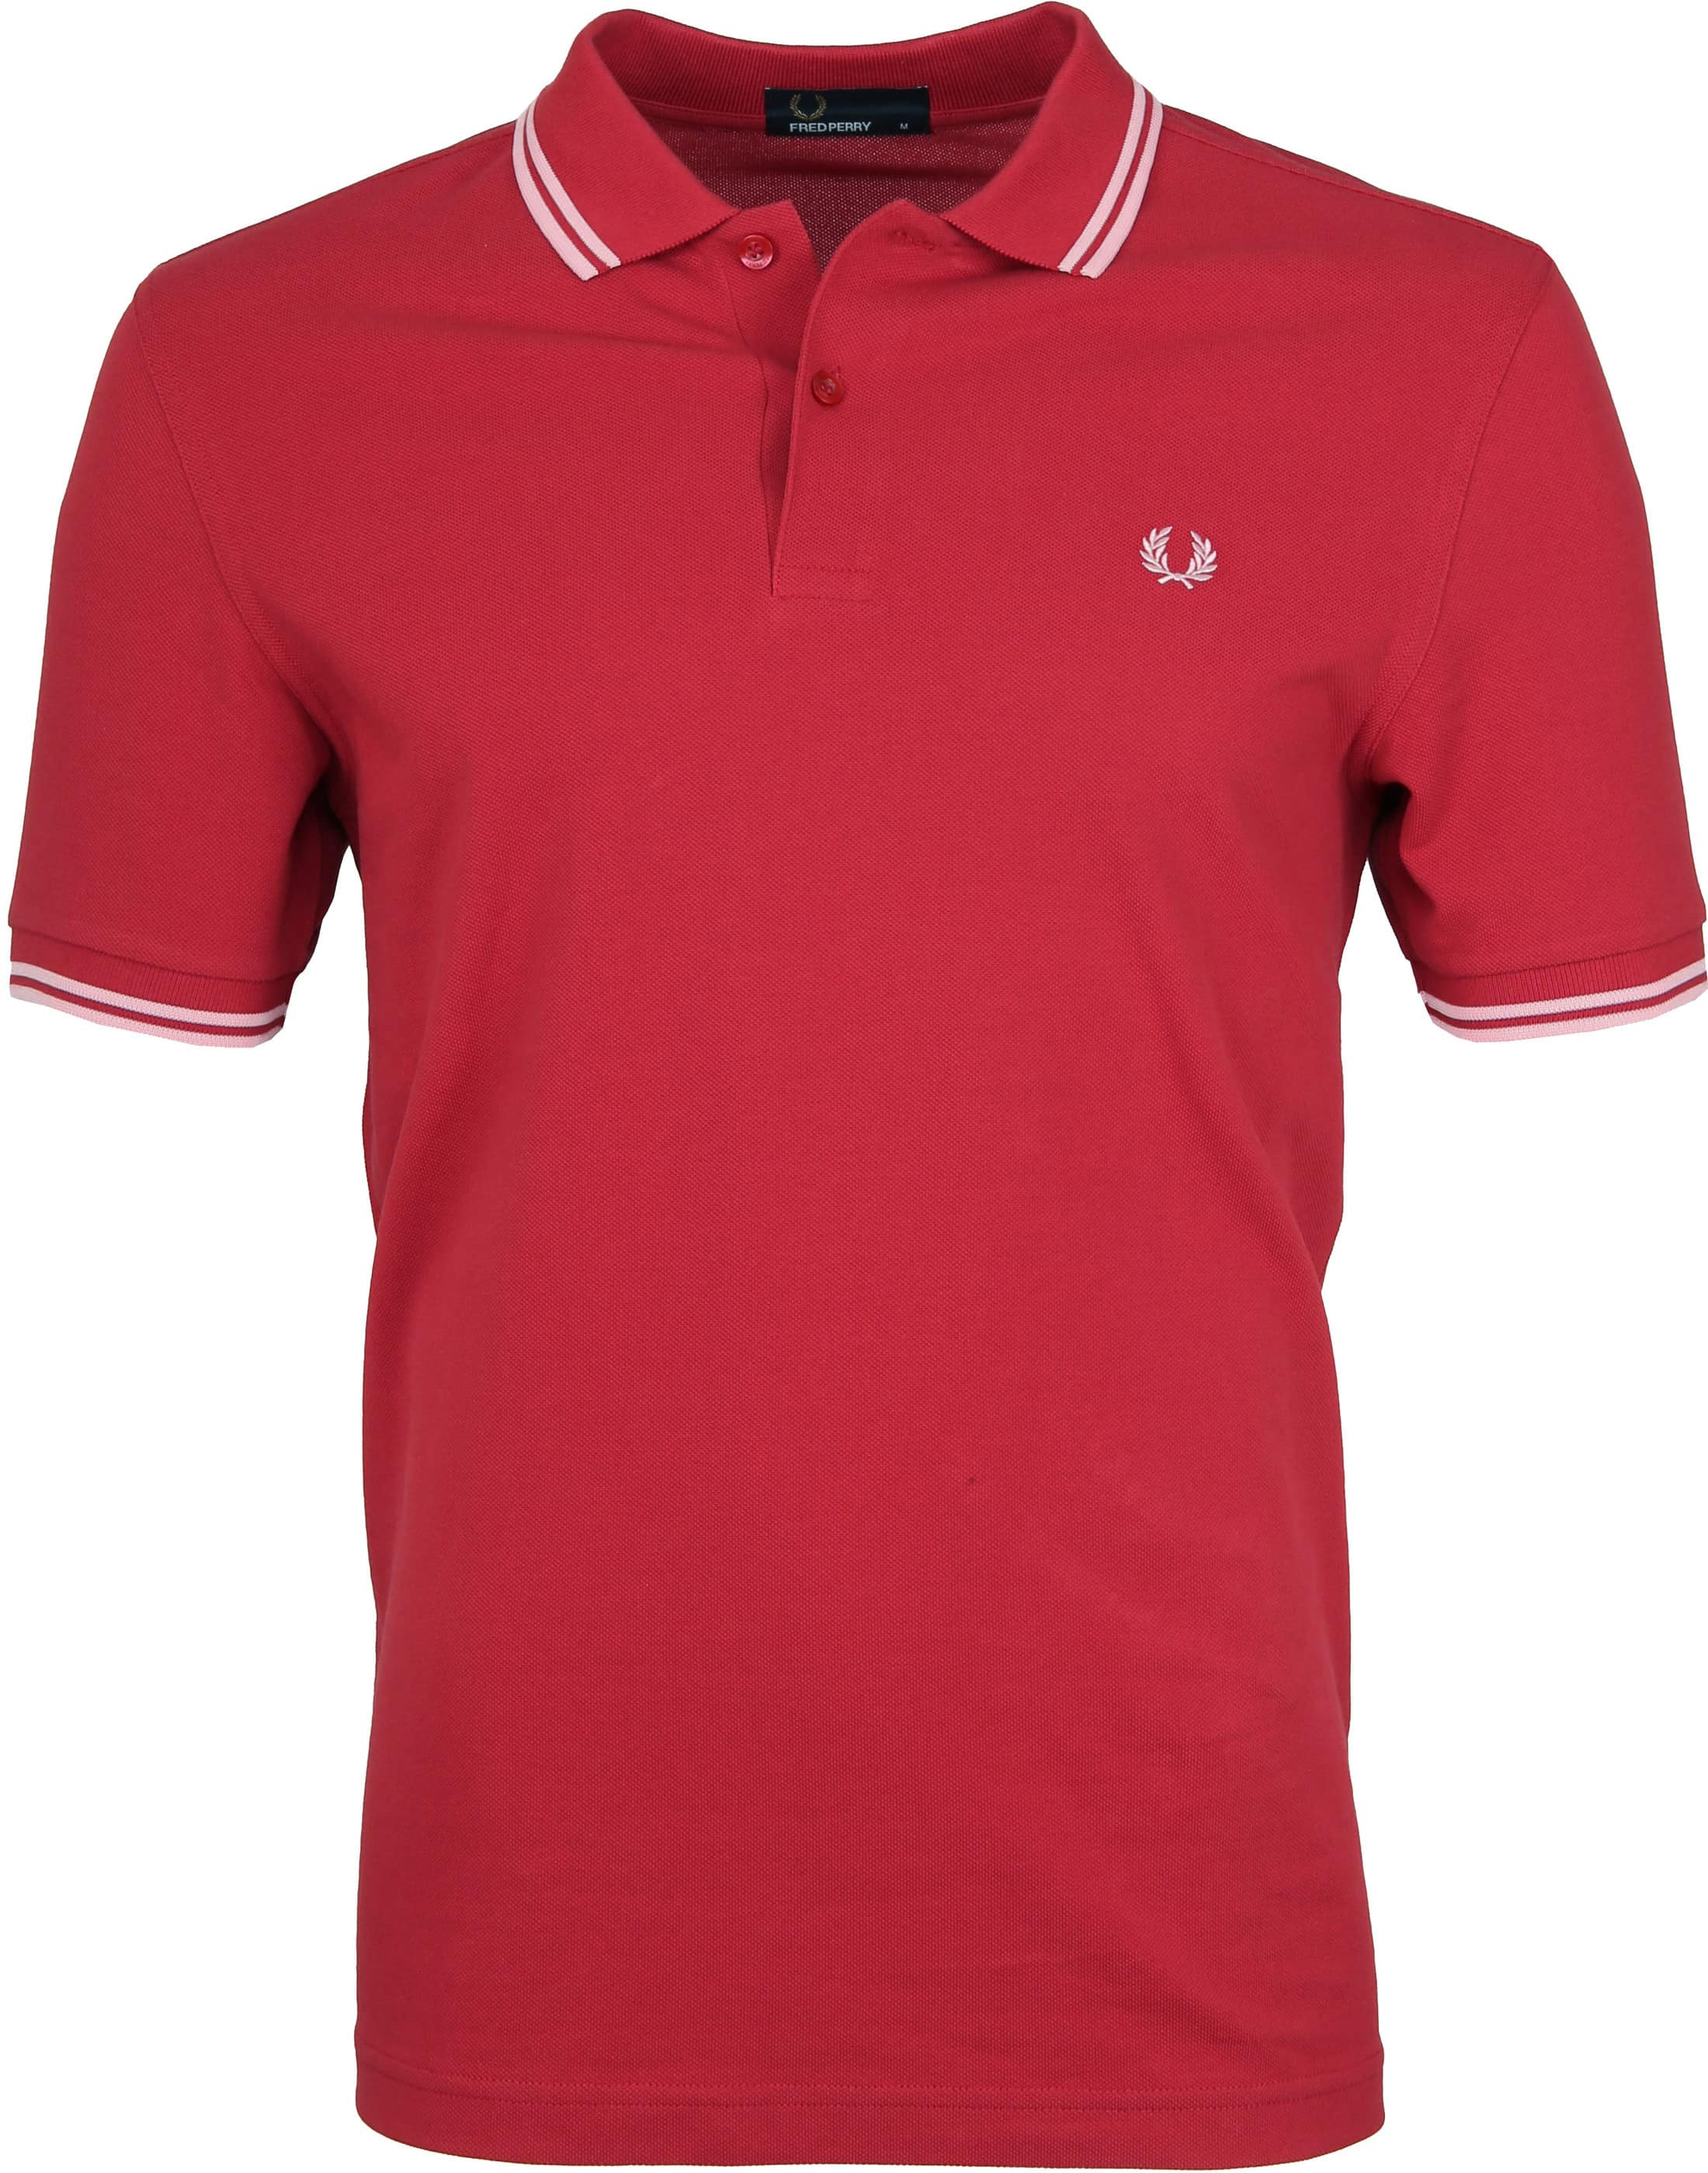 Fred Perry Poloshirt Rot 541 foto 0